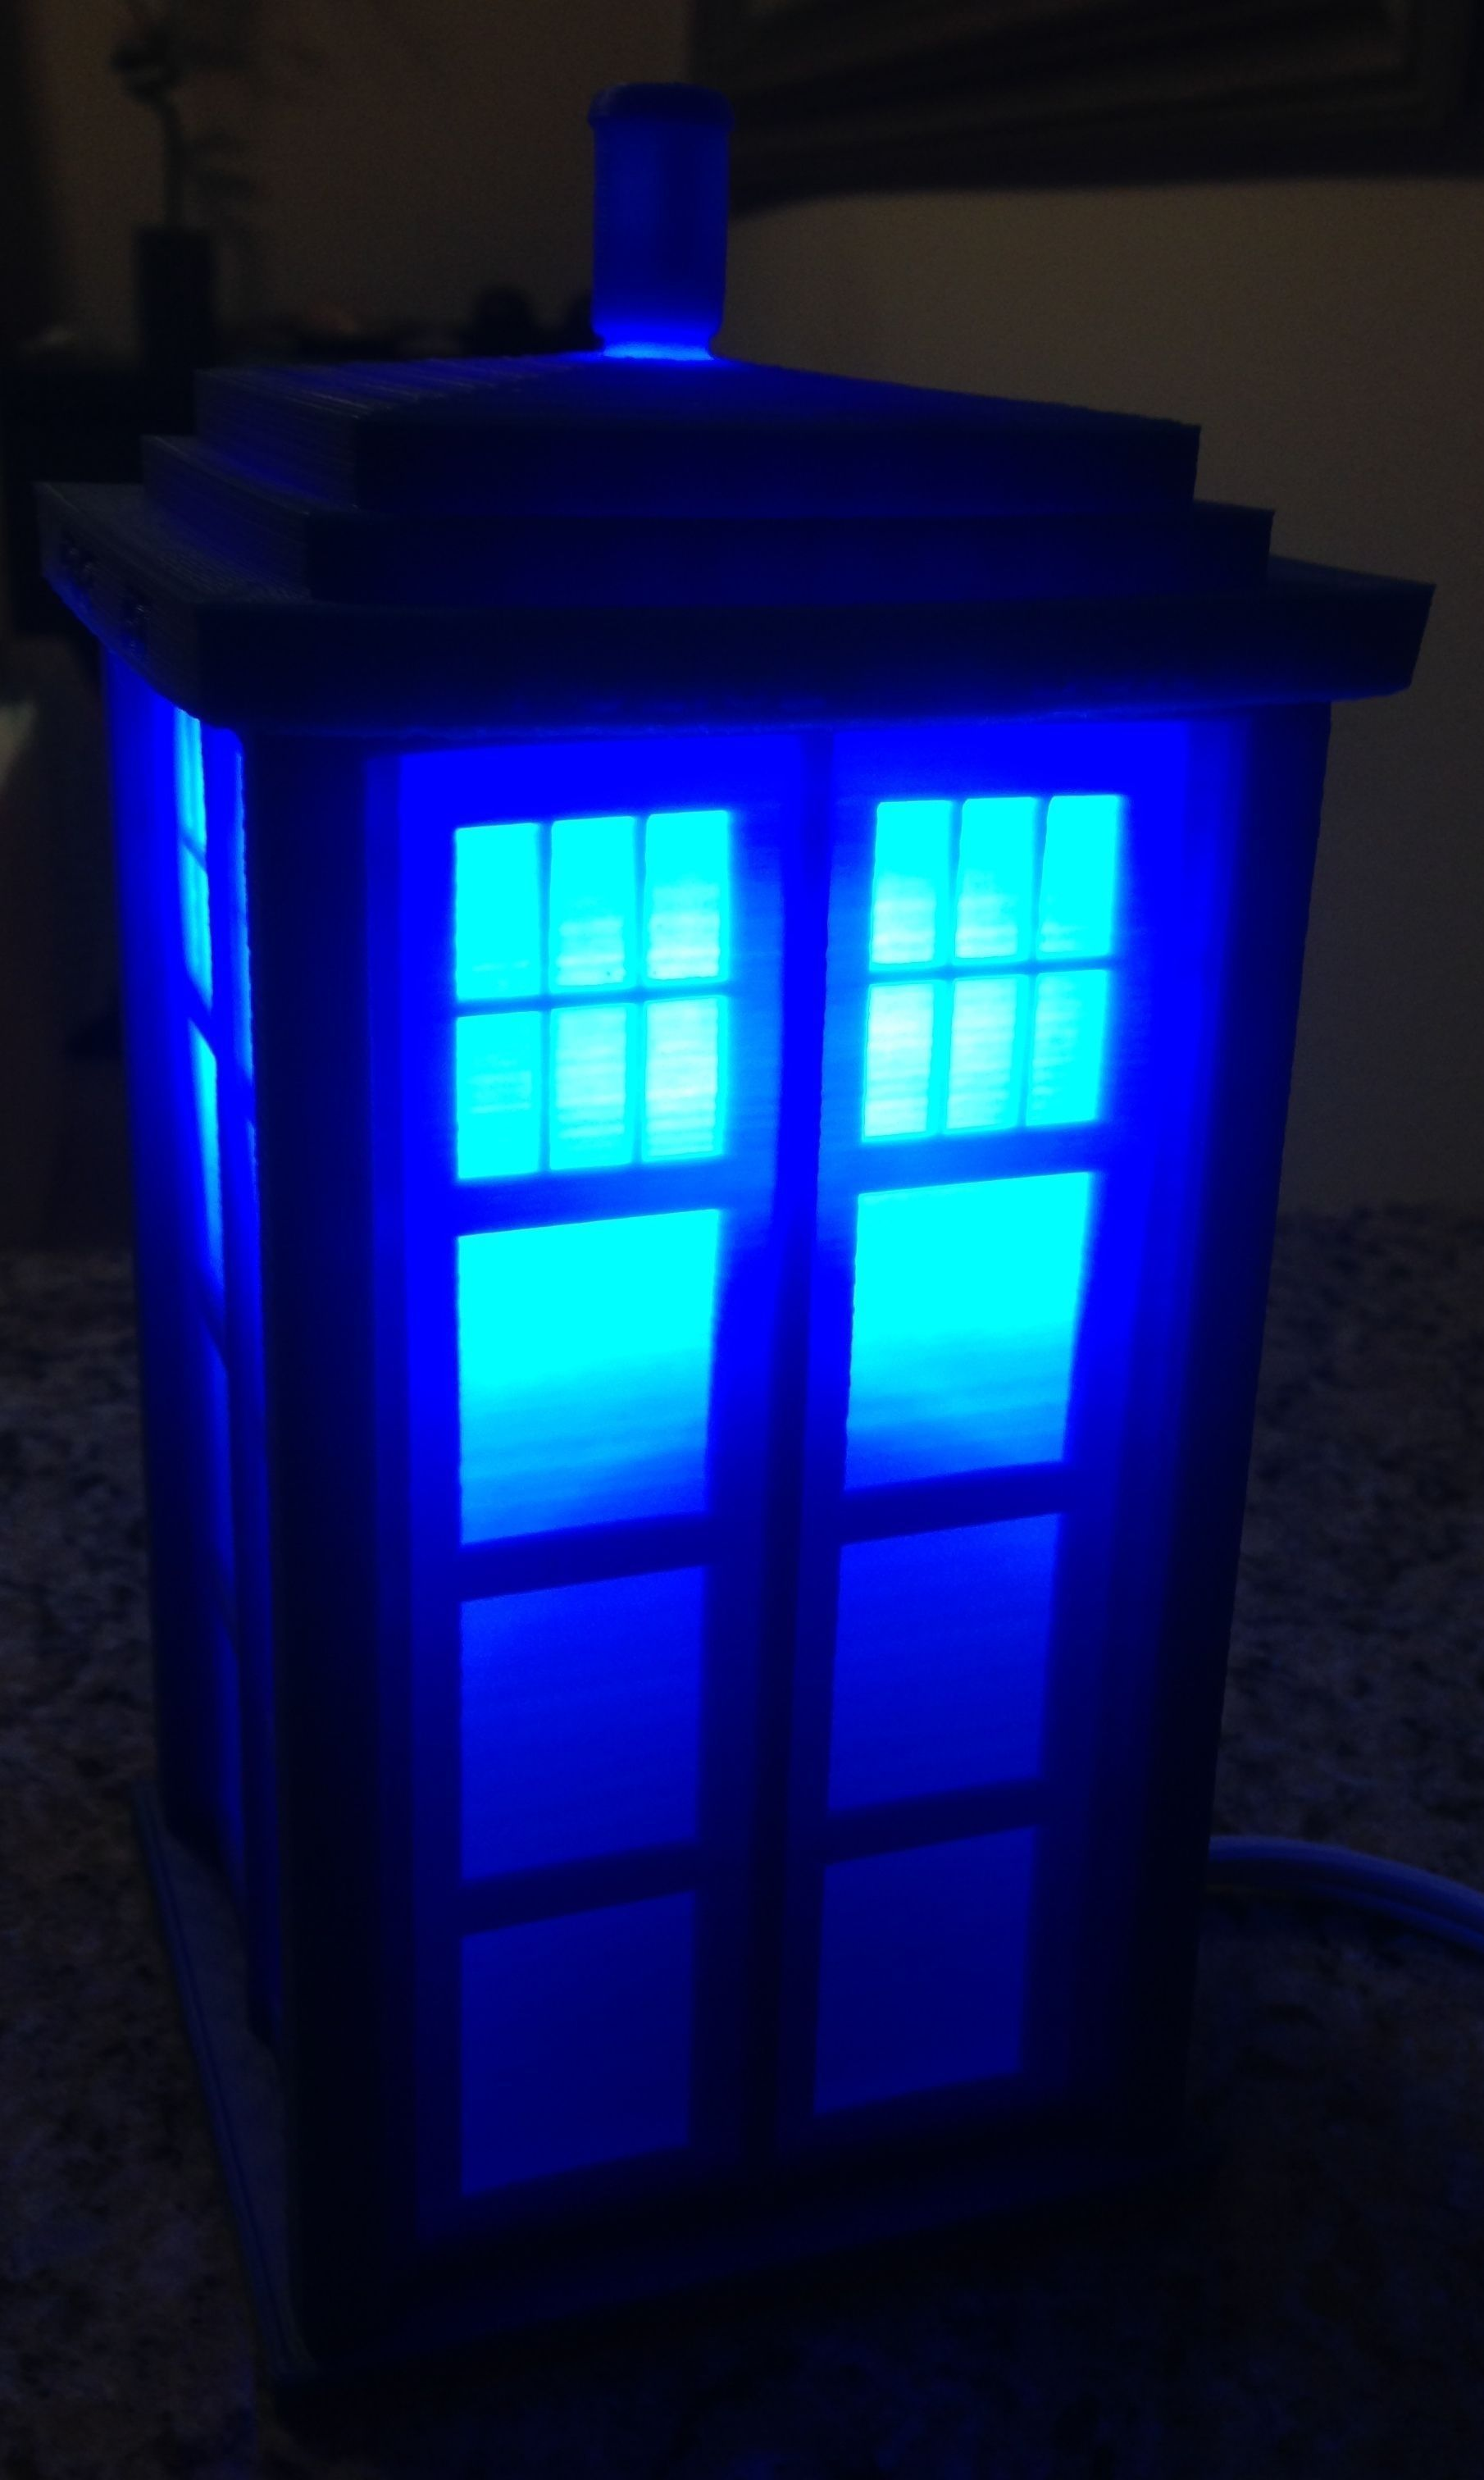 TARDIS Lamp or Circa 1960s London Police Call Box | 3D Print Model